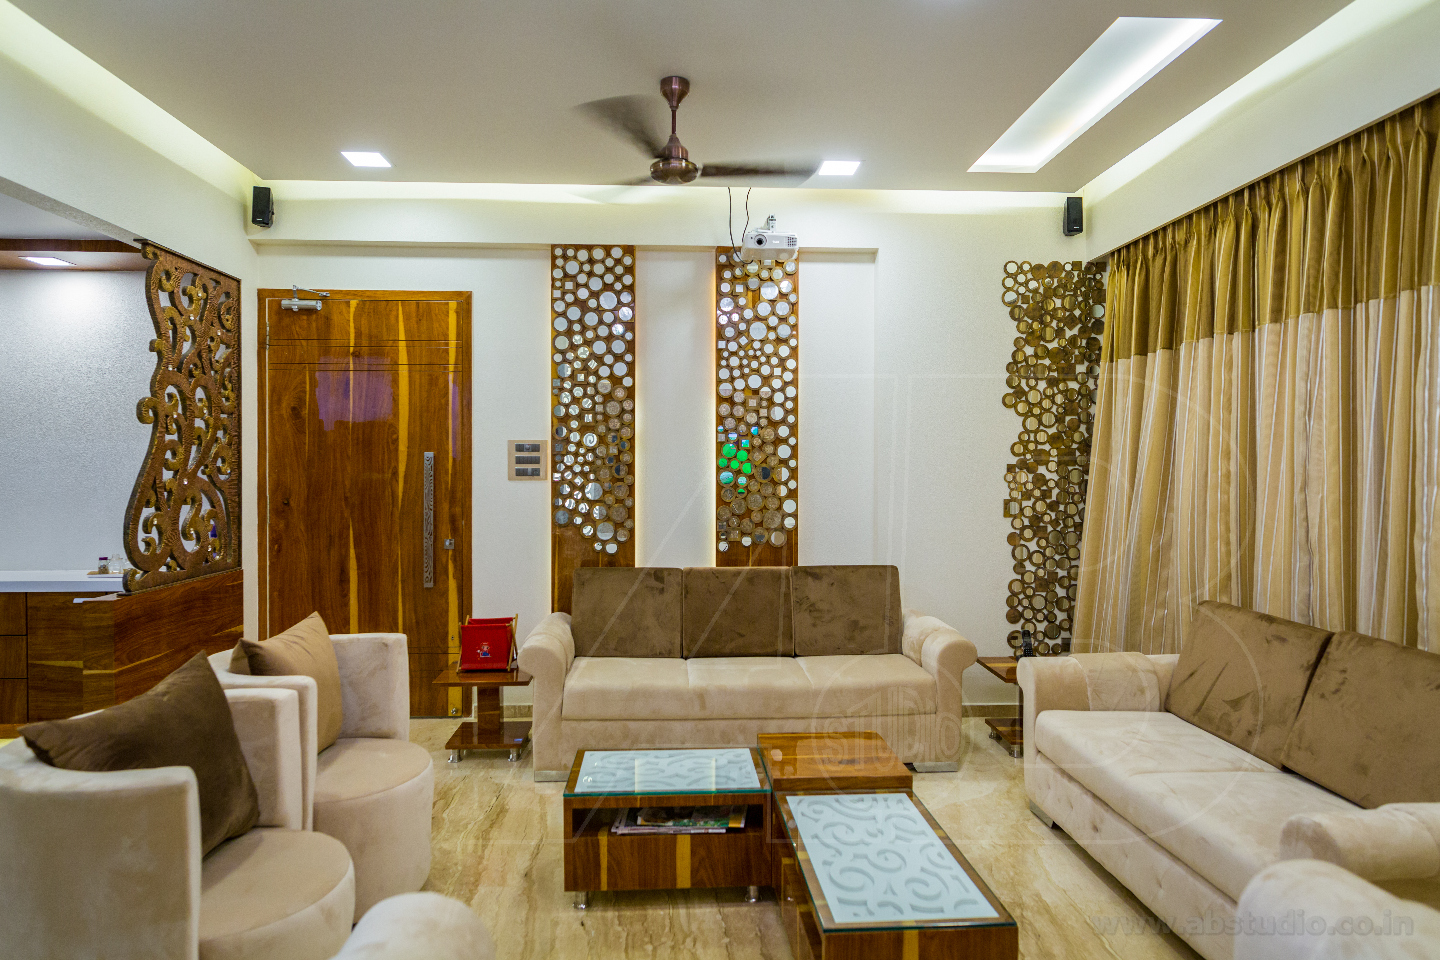 interior designer in mumbai interior designing company best architects and interior designers in thane home interior design mumbai office interior - Home Interior Work